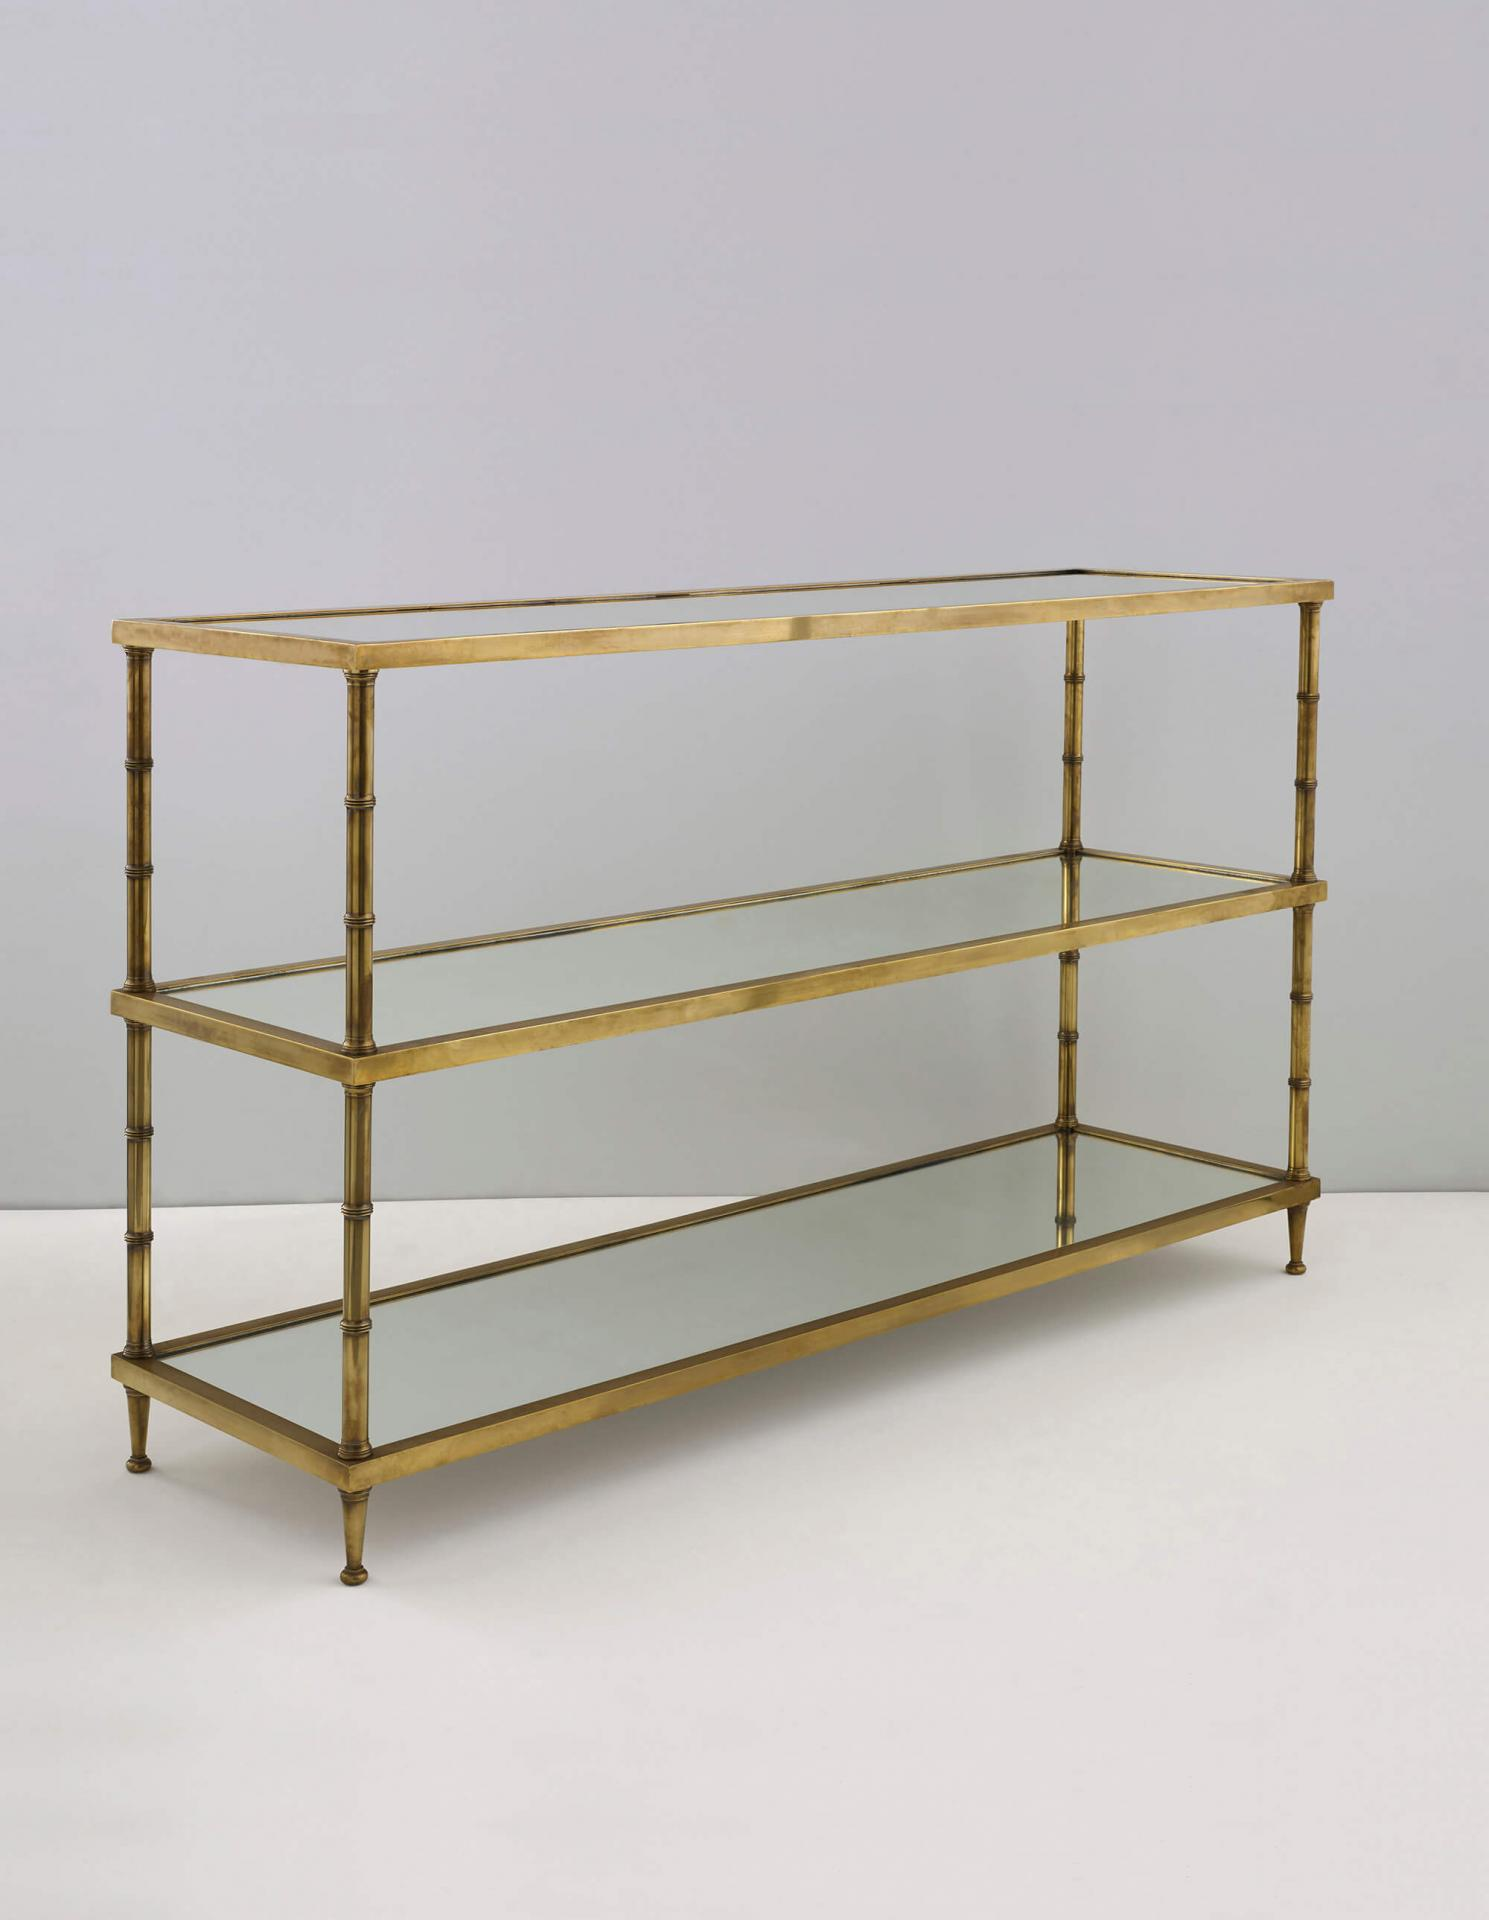 brass etagere by Collier Webb, available in a number of metal finishes and shelf options